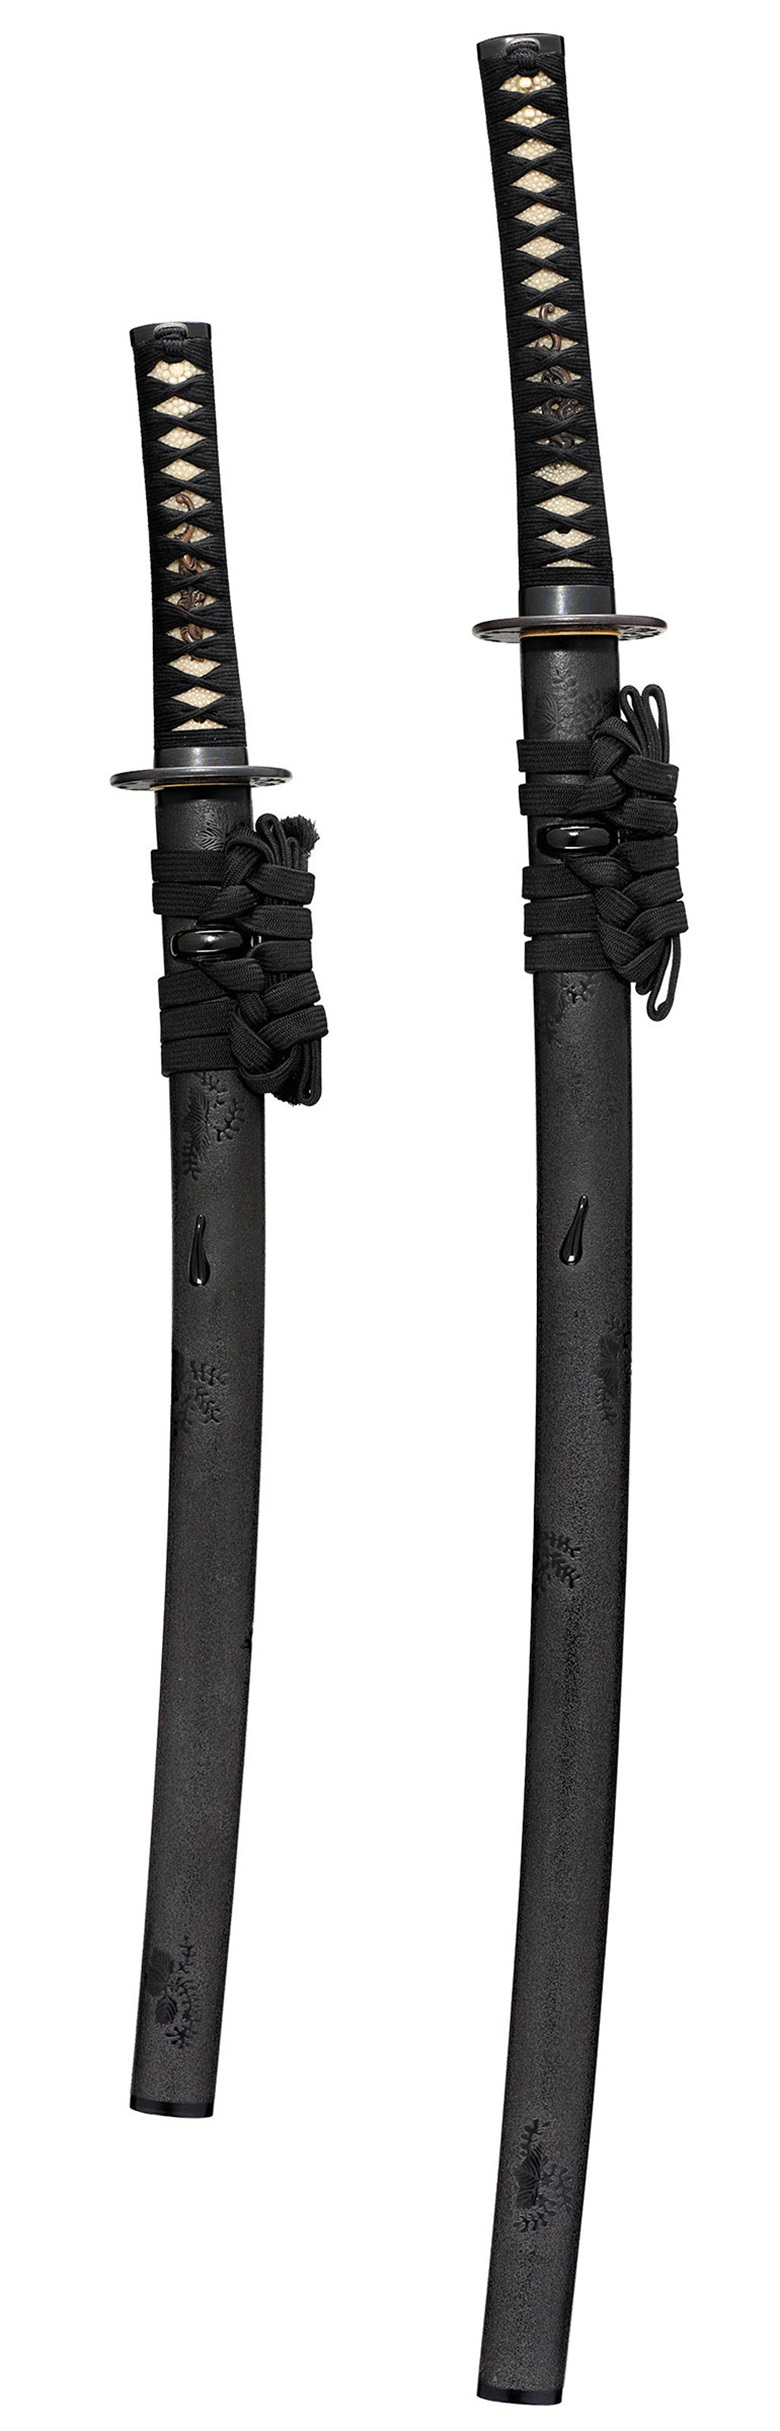 A sanpin daisho [matching pair of swords], Edo period (17th century). Estimate                    £5,000-7,000. This lot is offered in Arts of the Samurai the Dolphyn Collection, 6-13 December 2017, Online